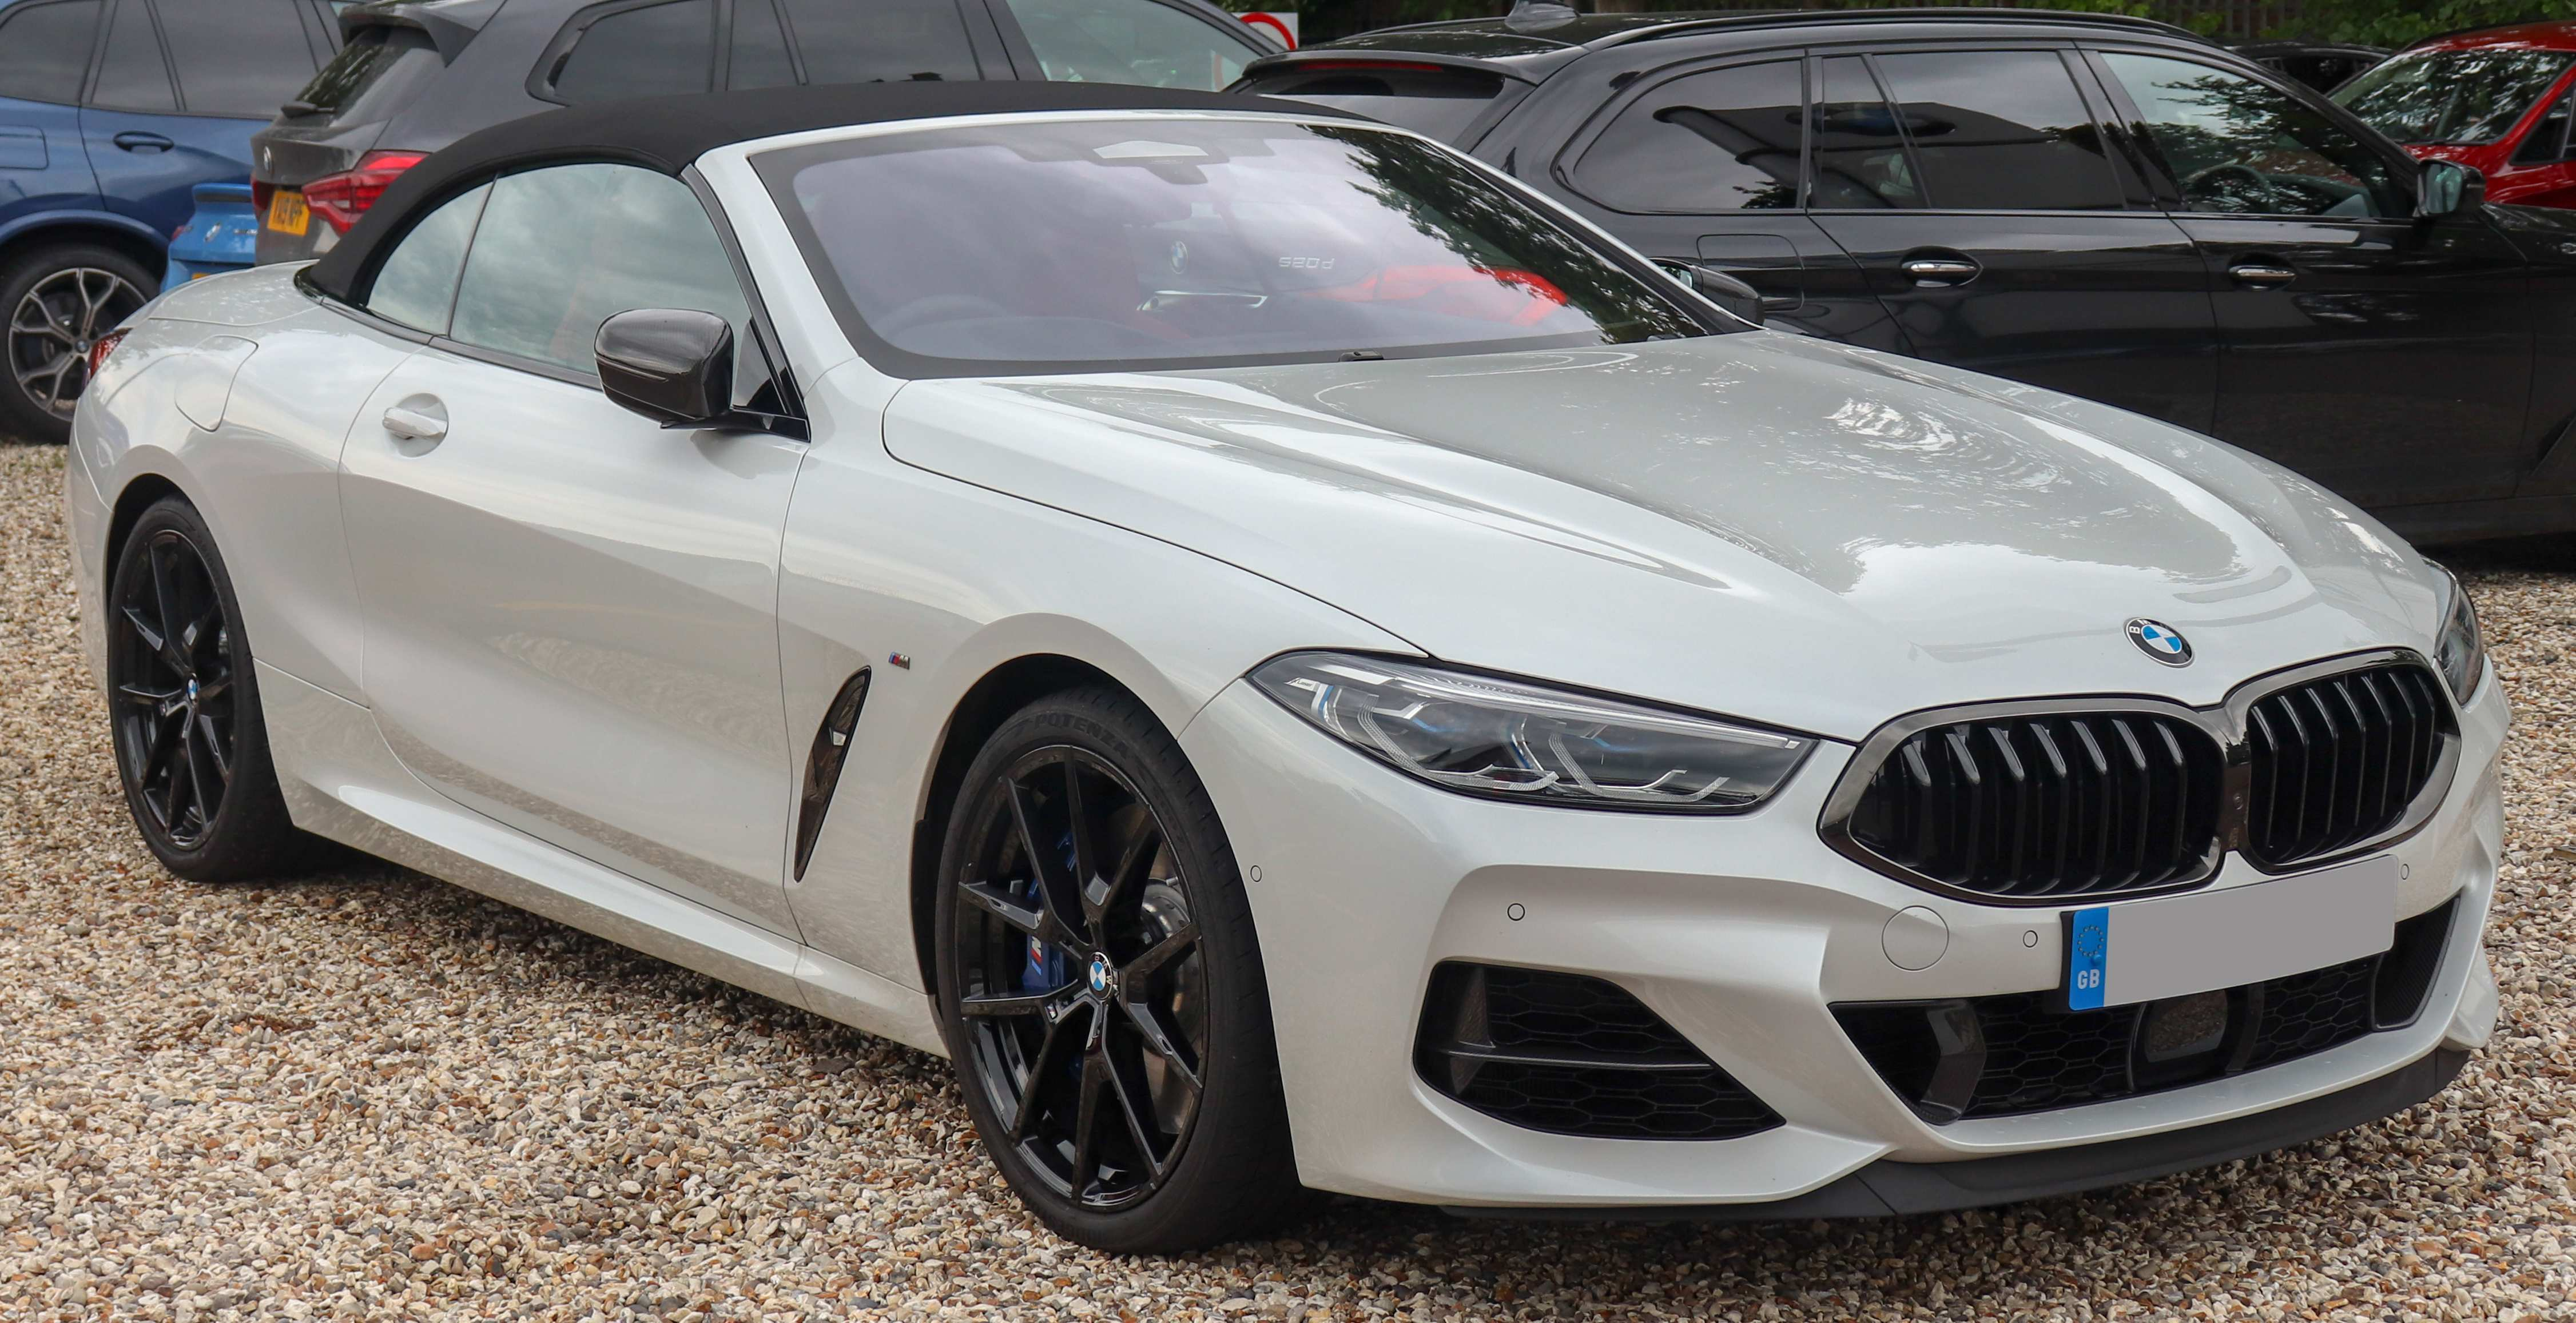 43 All New 2019 Bmw 850I Performance